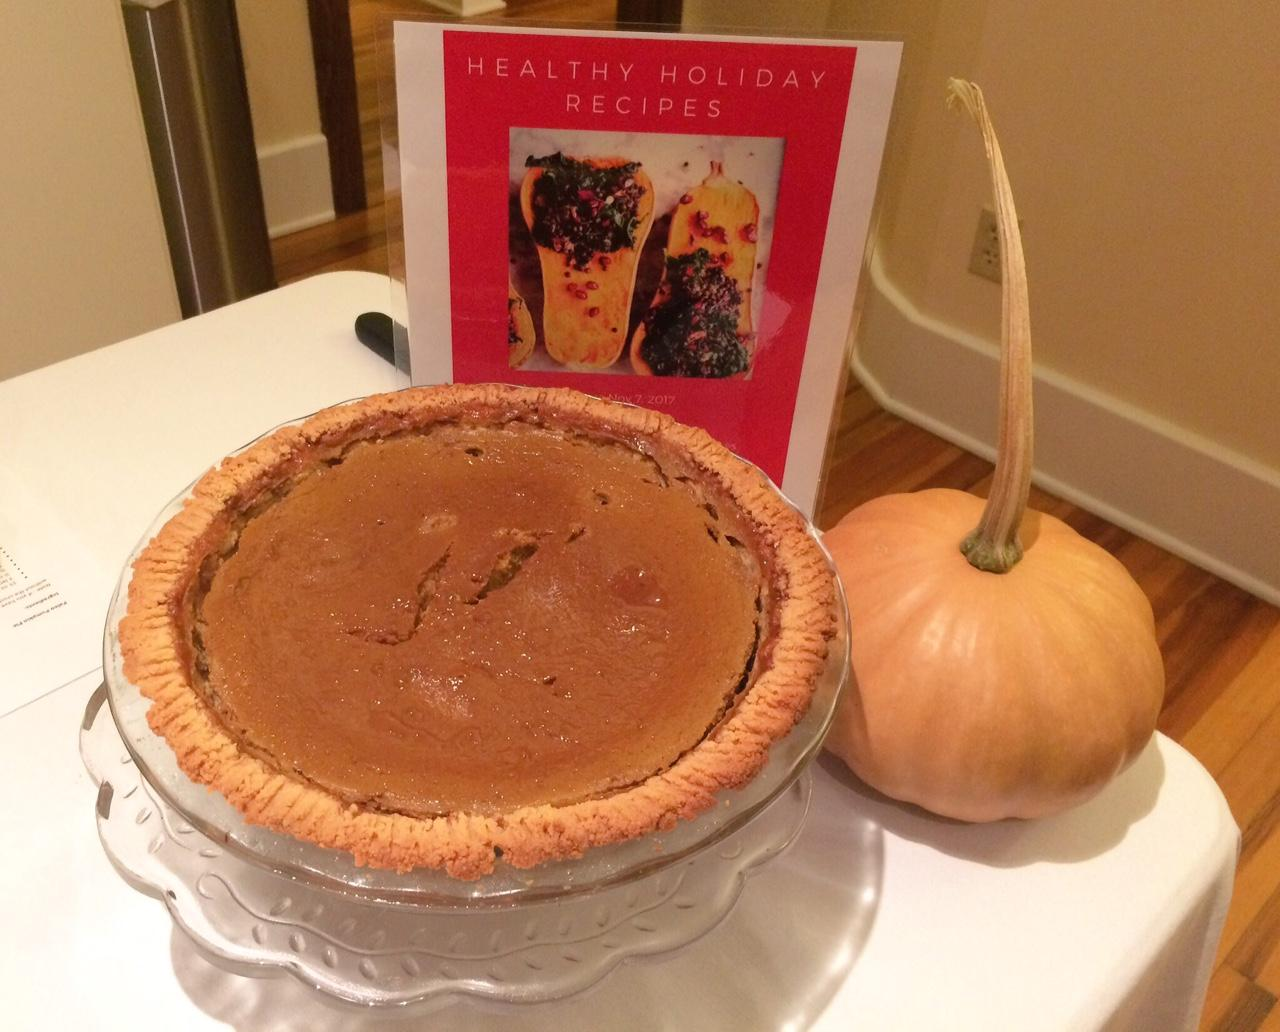 Eating healthy during the holidays, paleo pumpkin pie. (Photo courtesy: WLOS staff)<p></p>